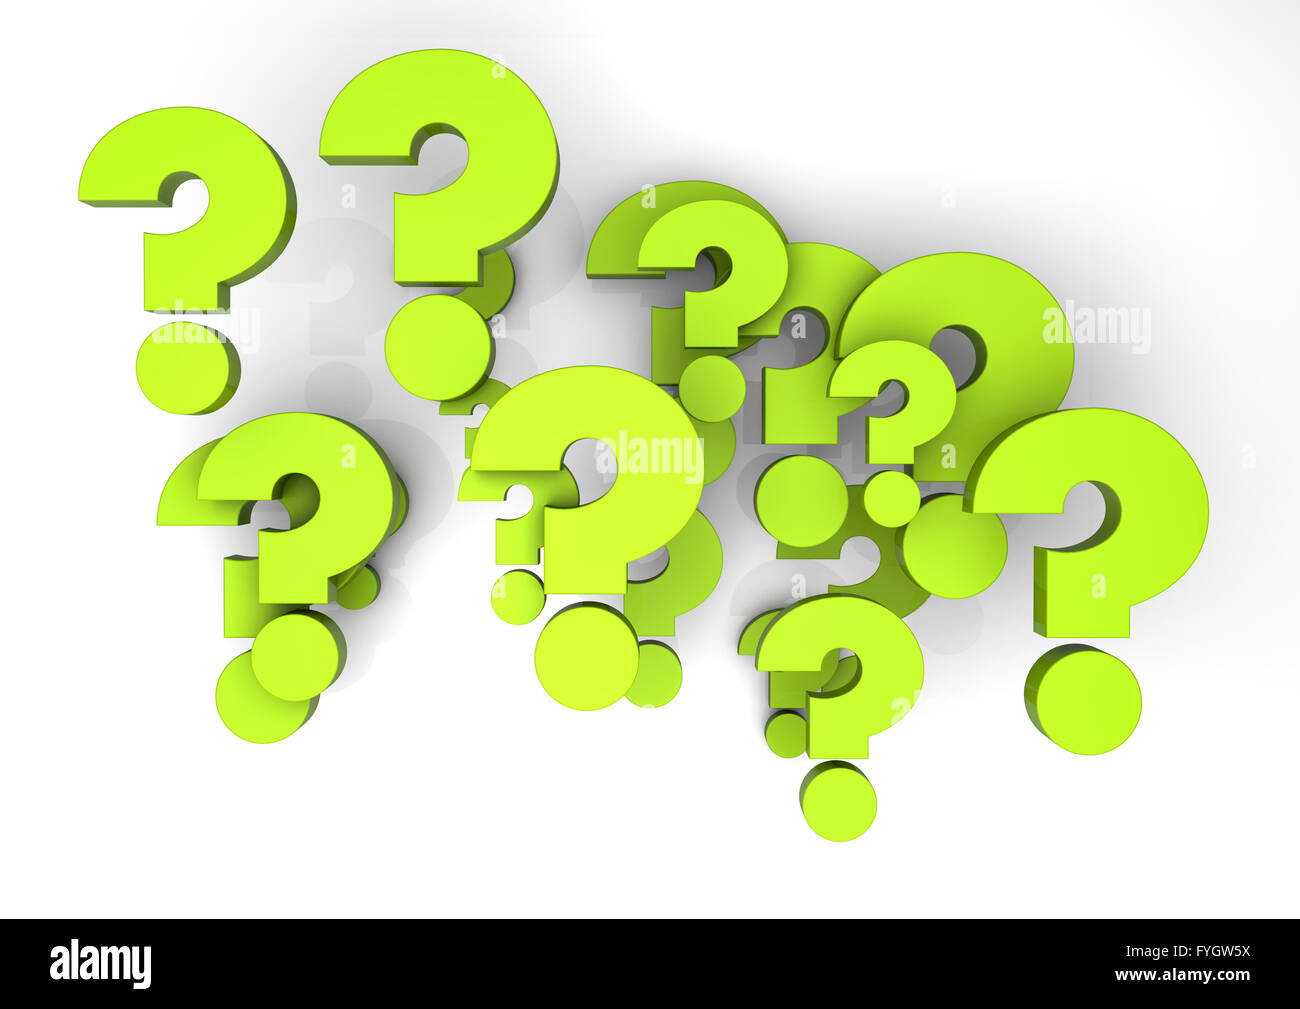 render of a group of questions - Stock Image